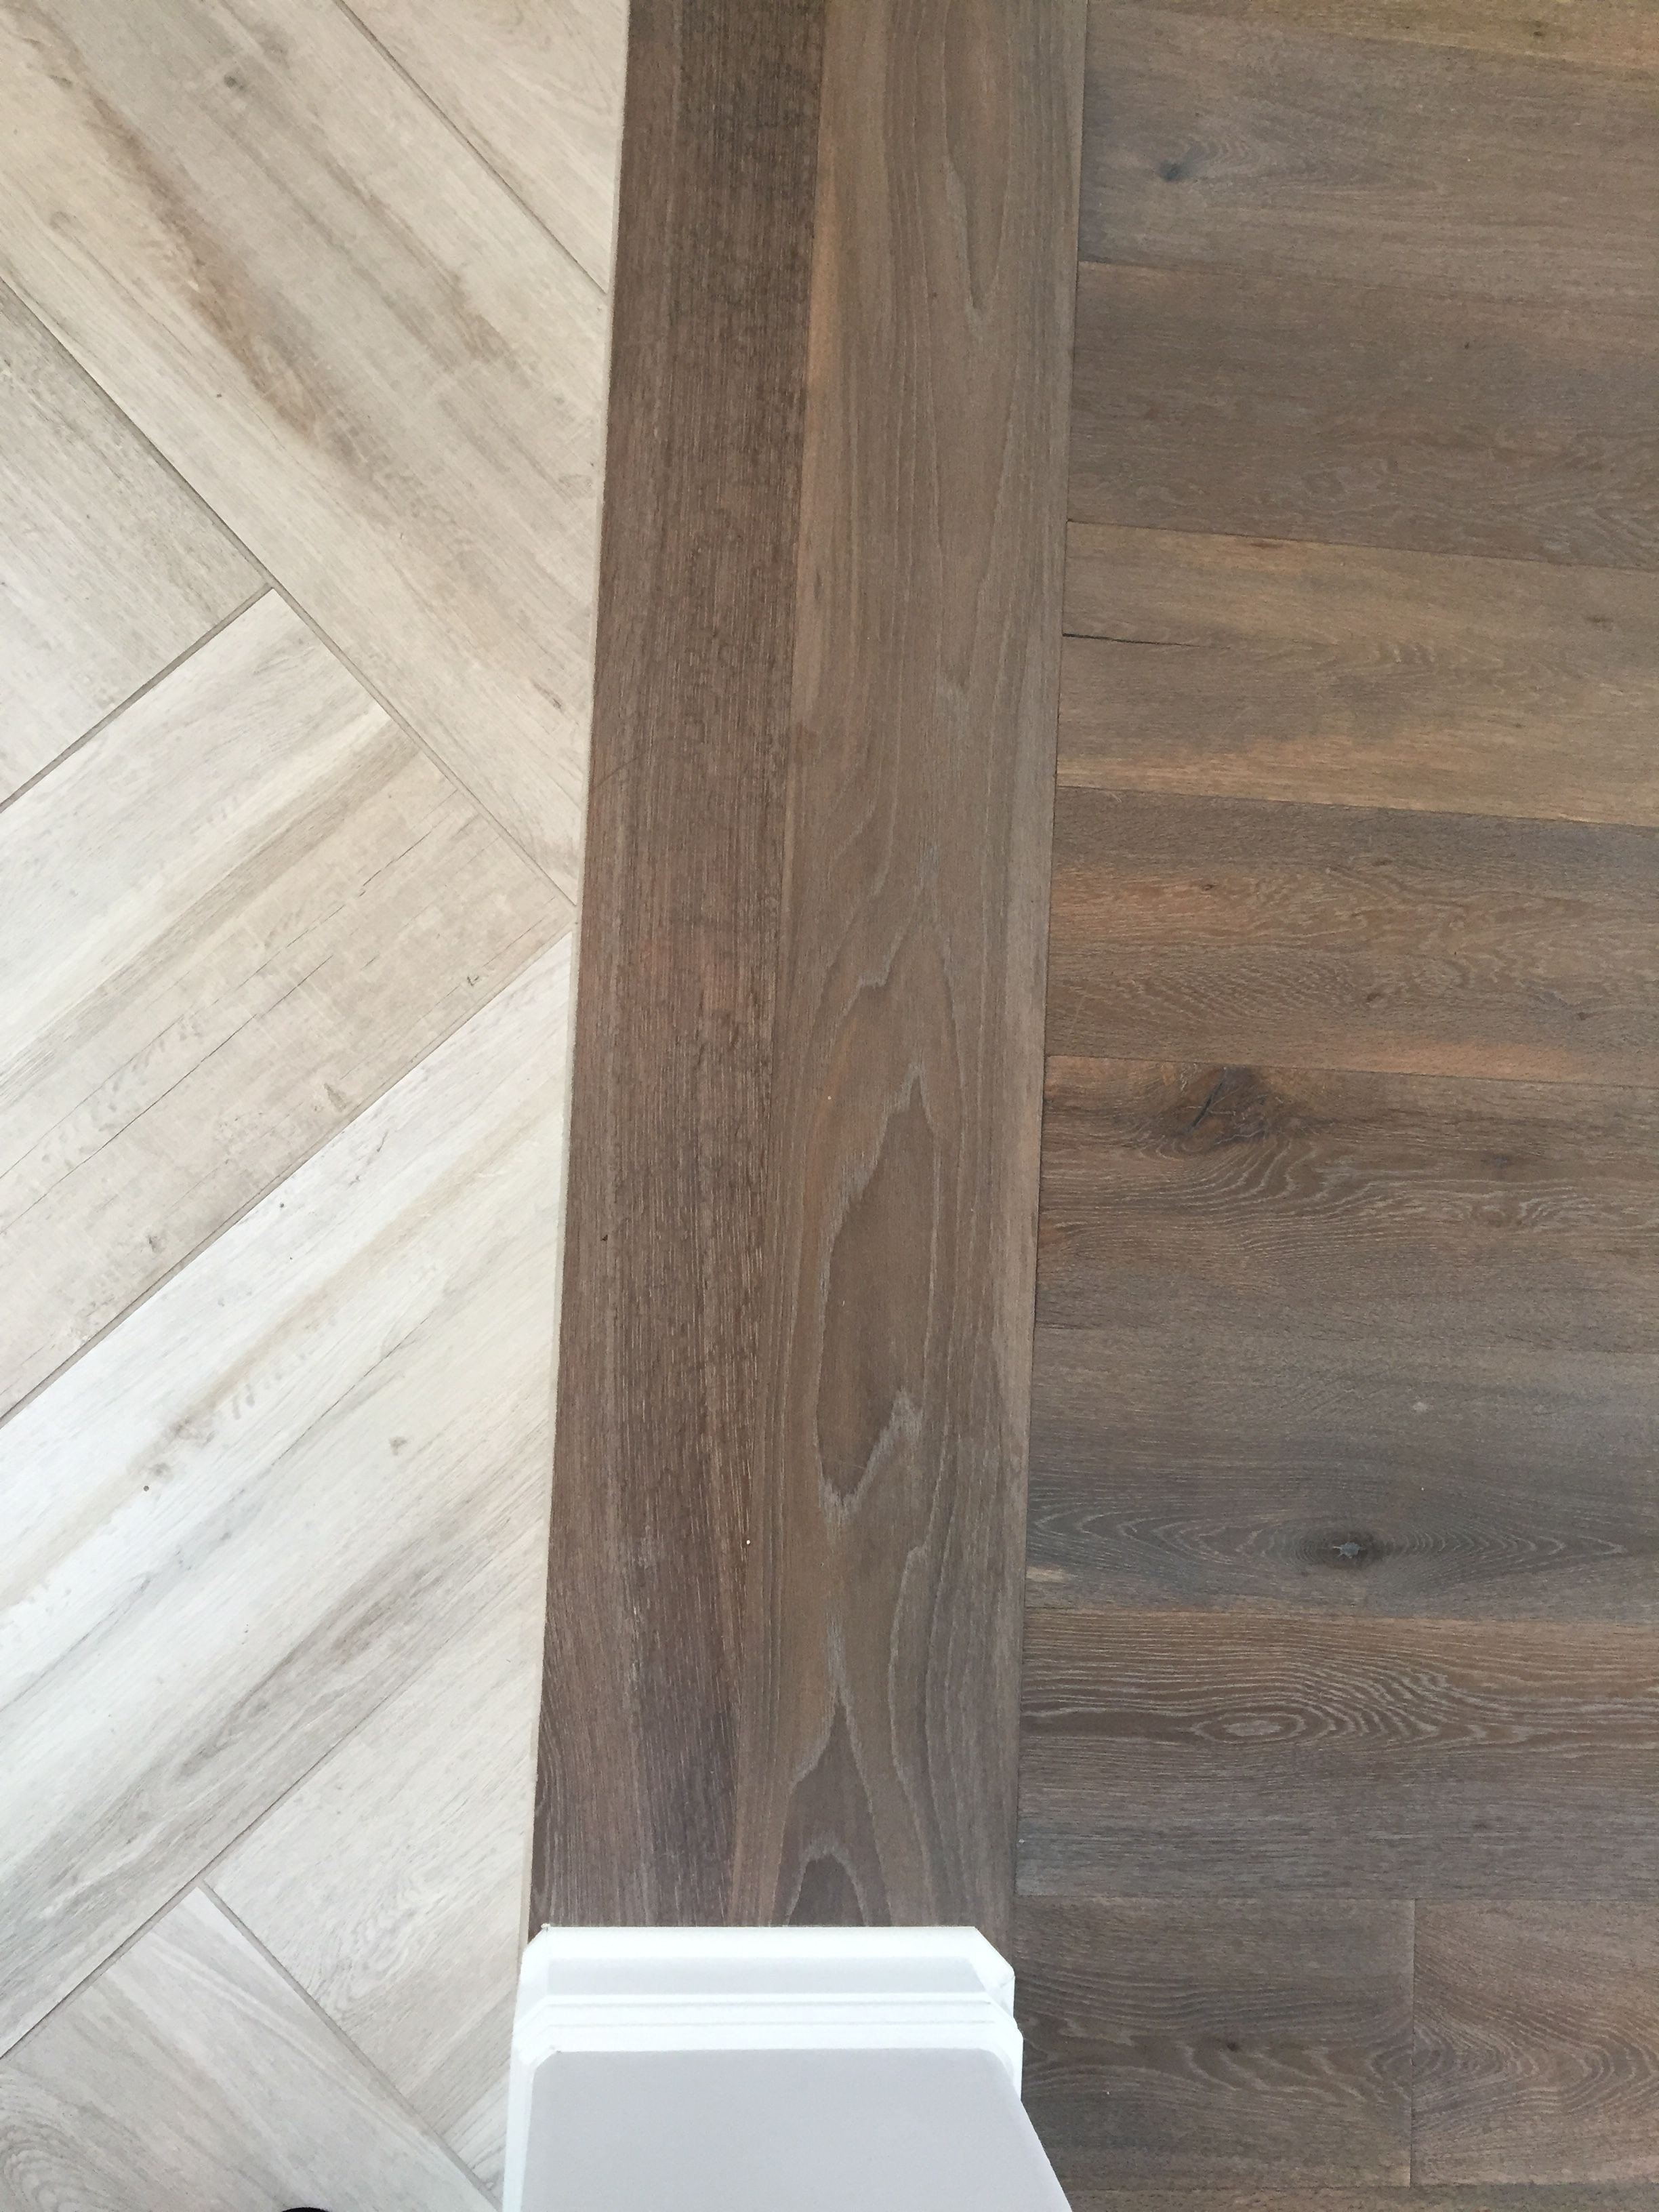 Hardwood Floor Trim Installation Of Floor Transition Laminate to Herringbone Tile Pattern Model for Floor Transition Laminate to Herringbone Tile Pattern Herringbone Tile Pattern Herringbone Wood Floor